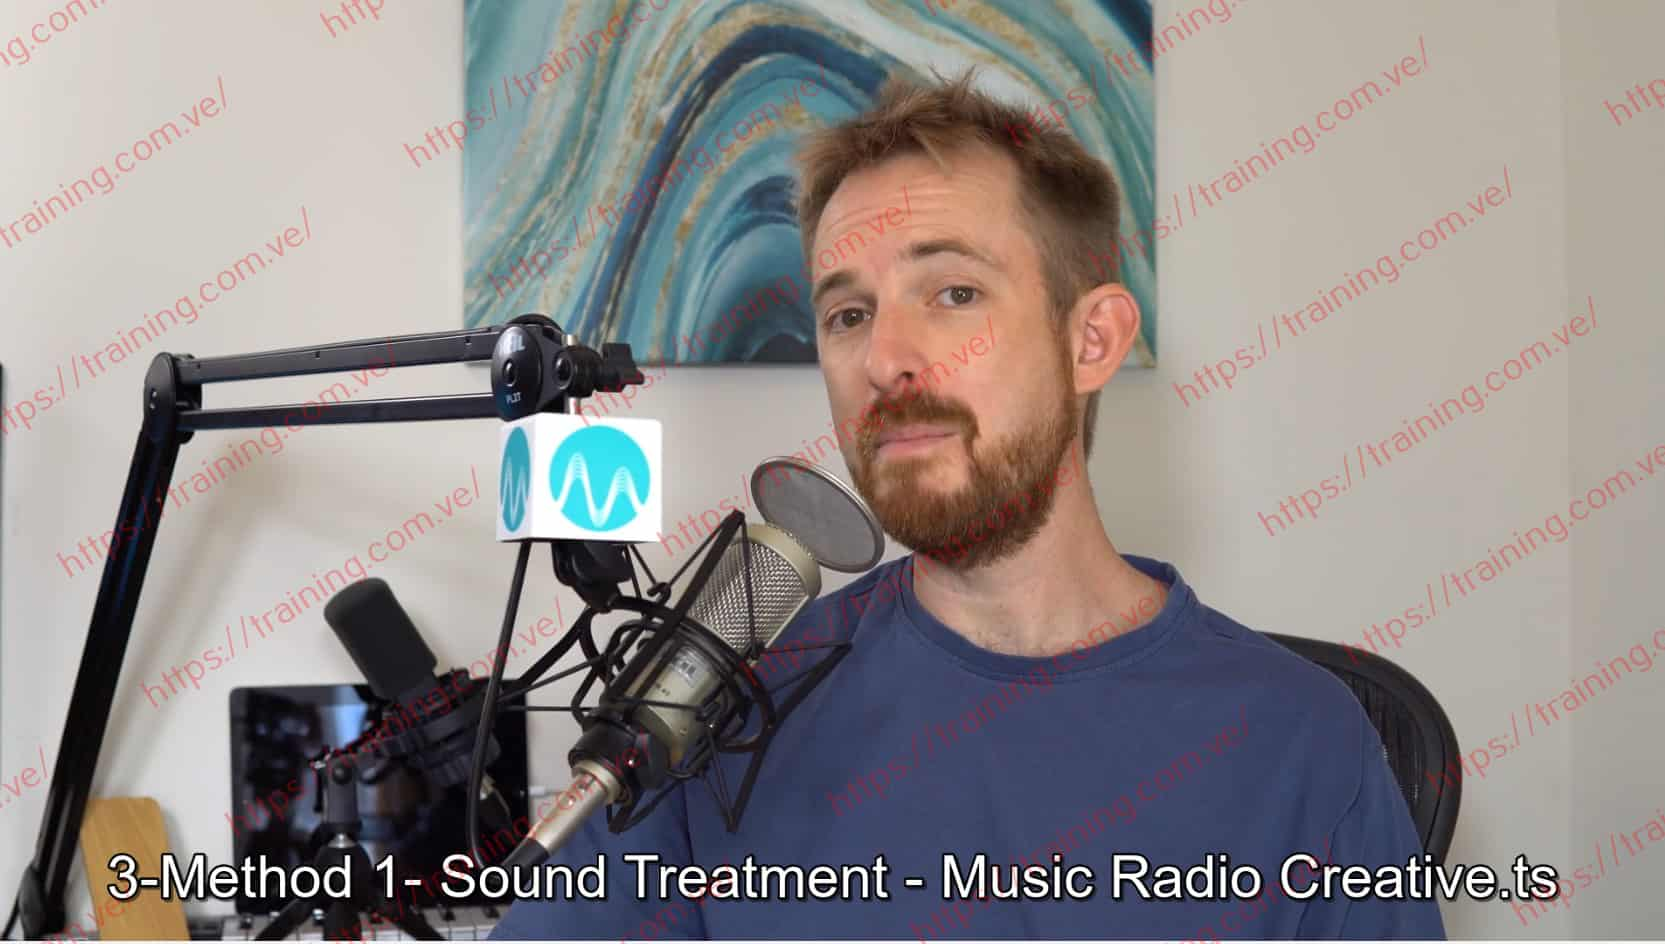 Podcast Production Course by Mike Russell Coupon